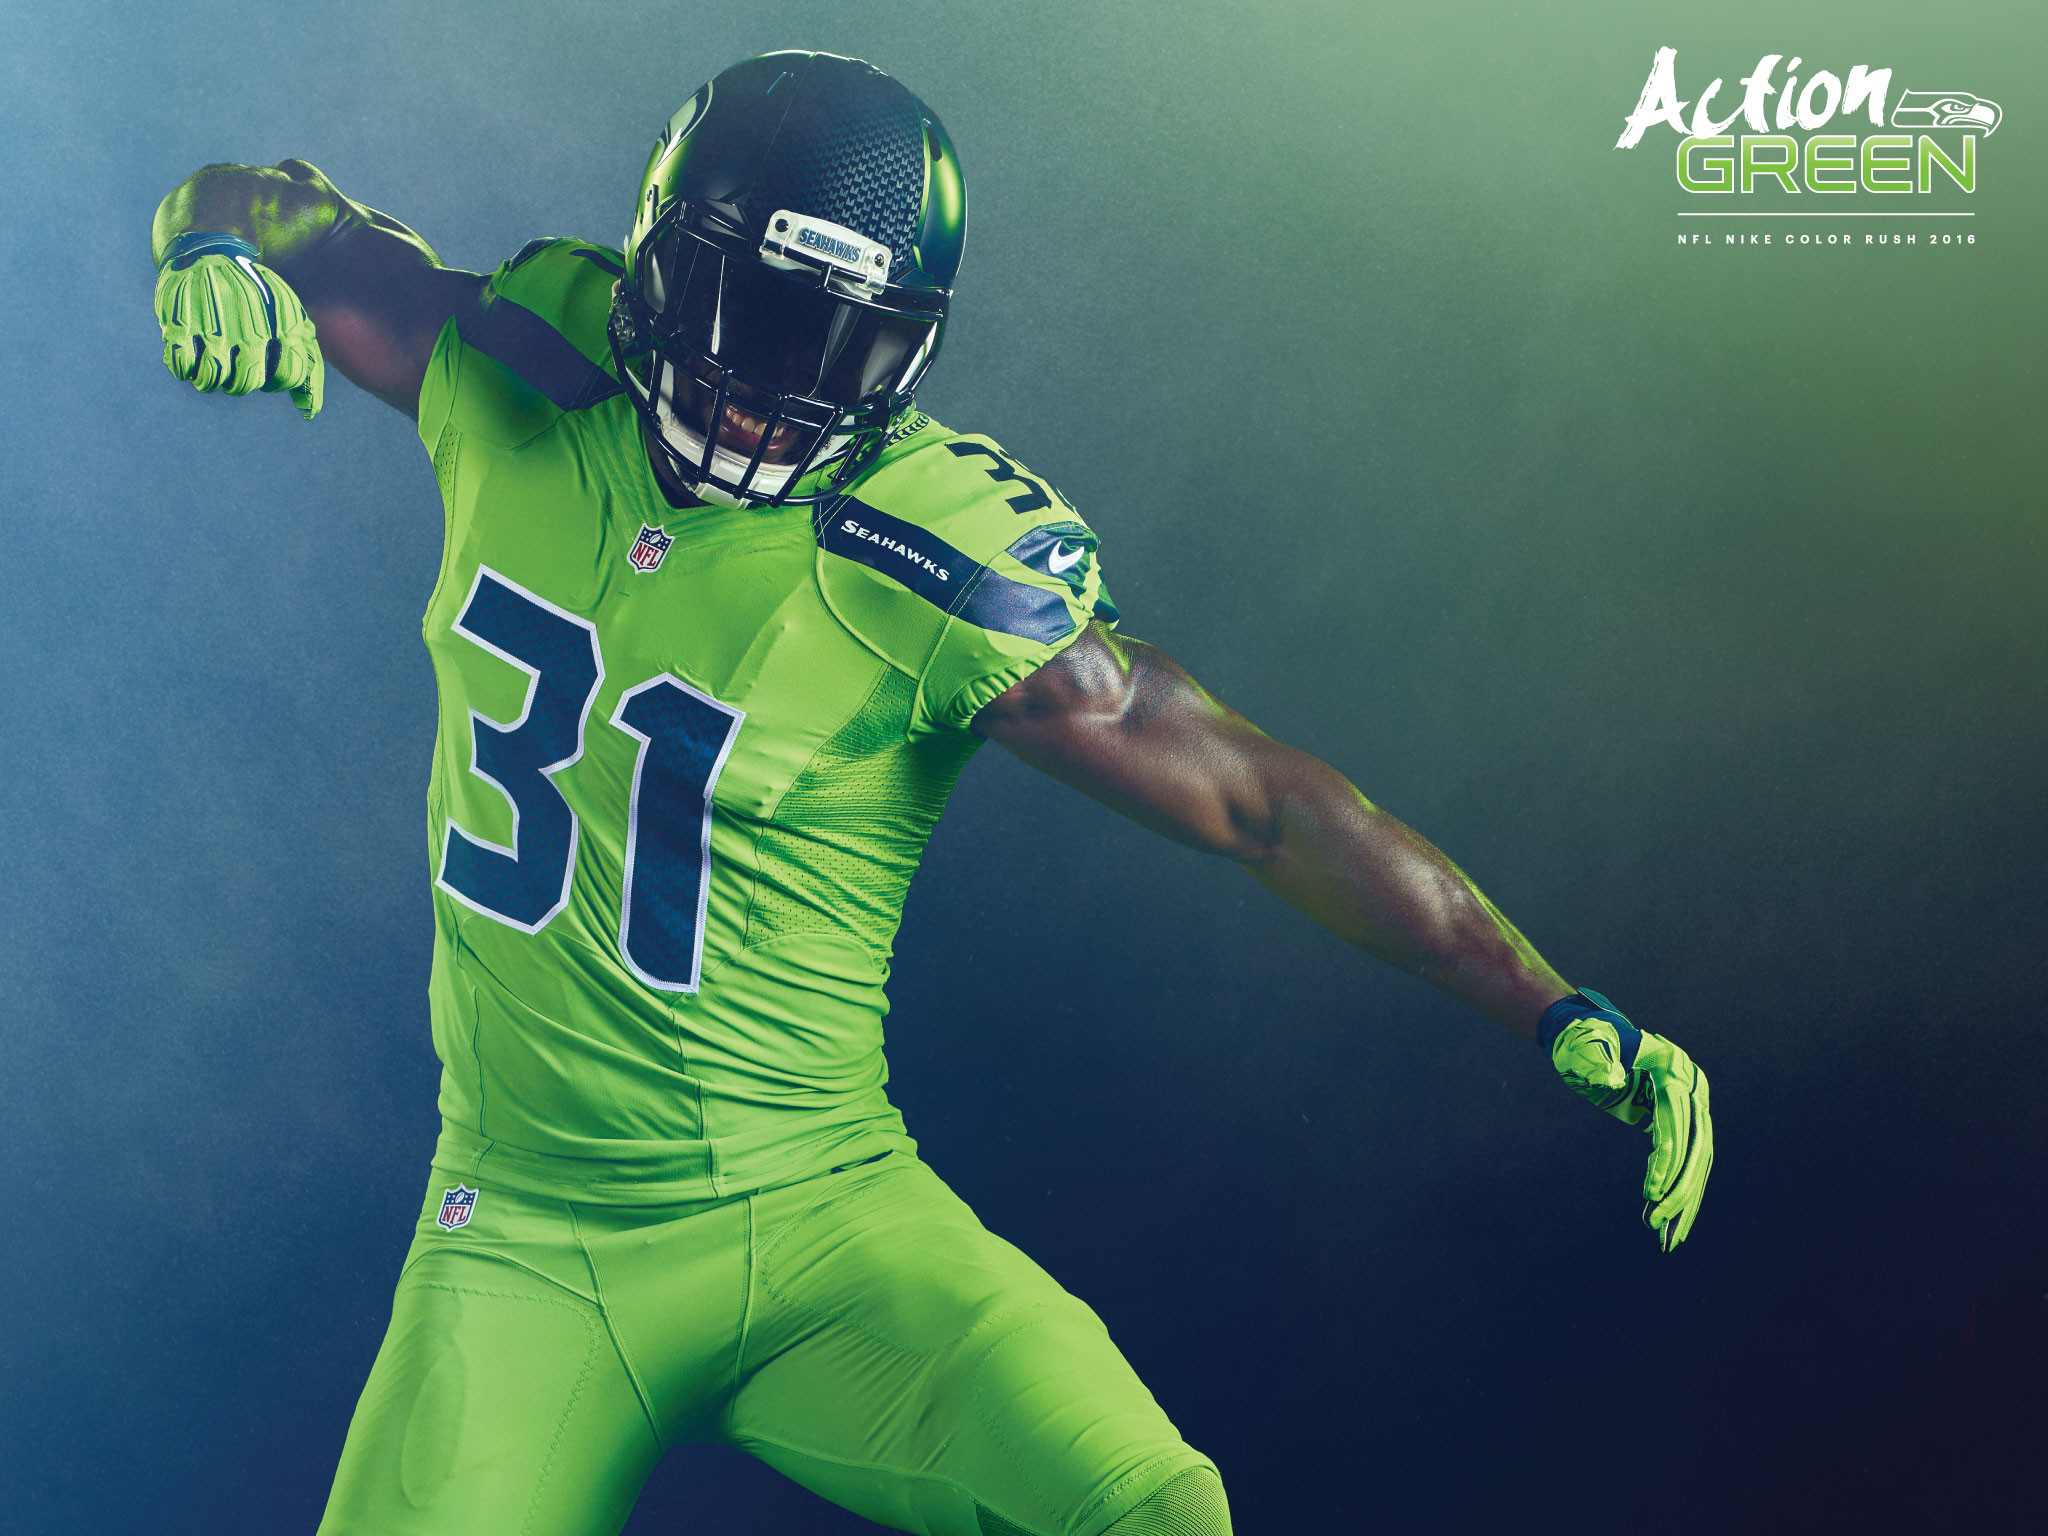 2048x1536 Action Green, Kam Chancellor